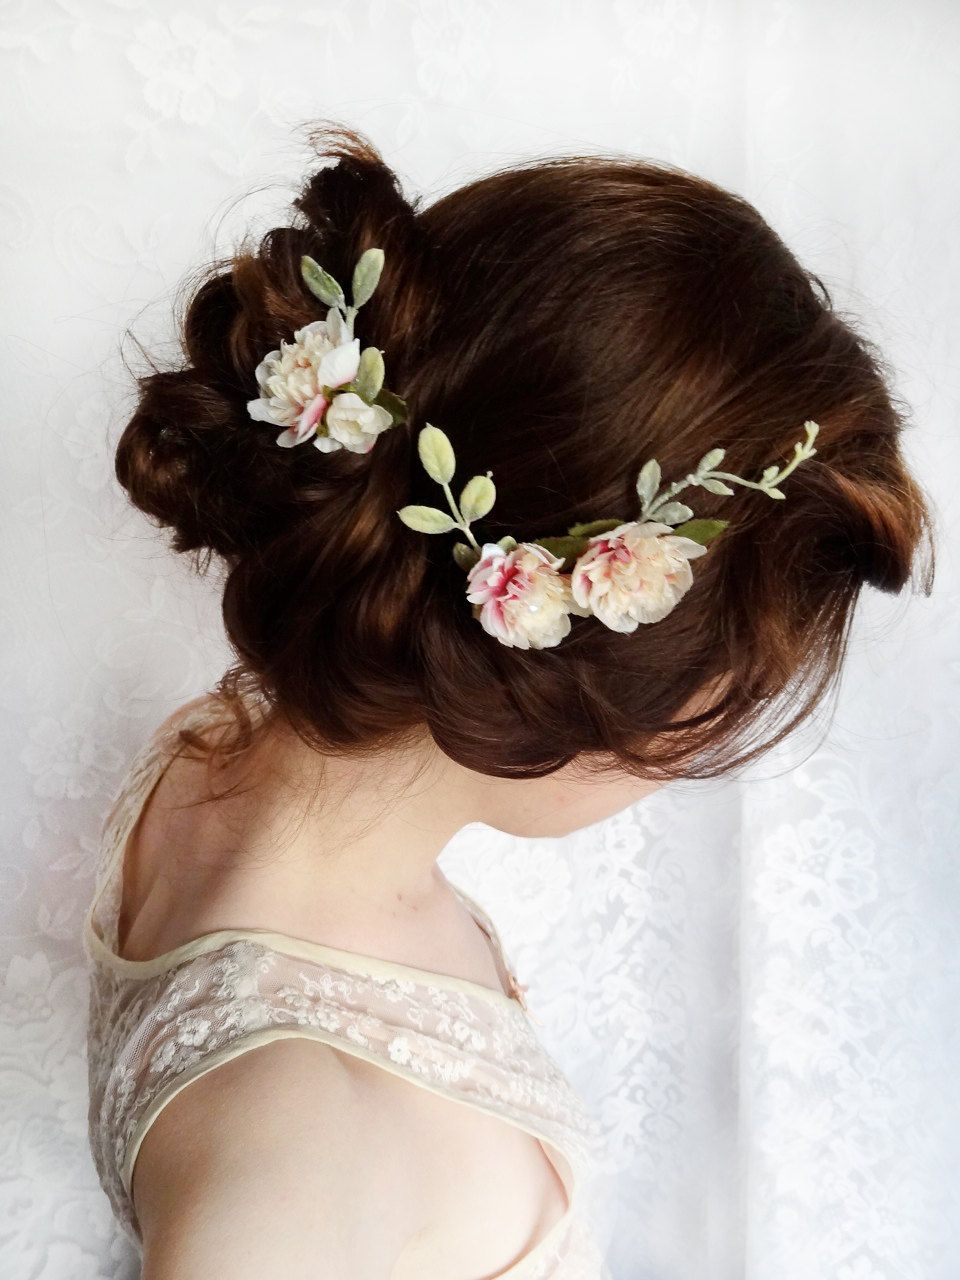 Bridal Hair Hair Pins Flower Hair Pins Bridal Headpiece Wedding Hair Piece Floral Hair Clips Bridal Hair Accessories Bridal Hair Clip Flower Hair Pin Flowers In Hair Bridal Hair